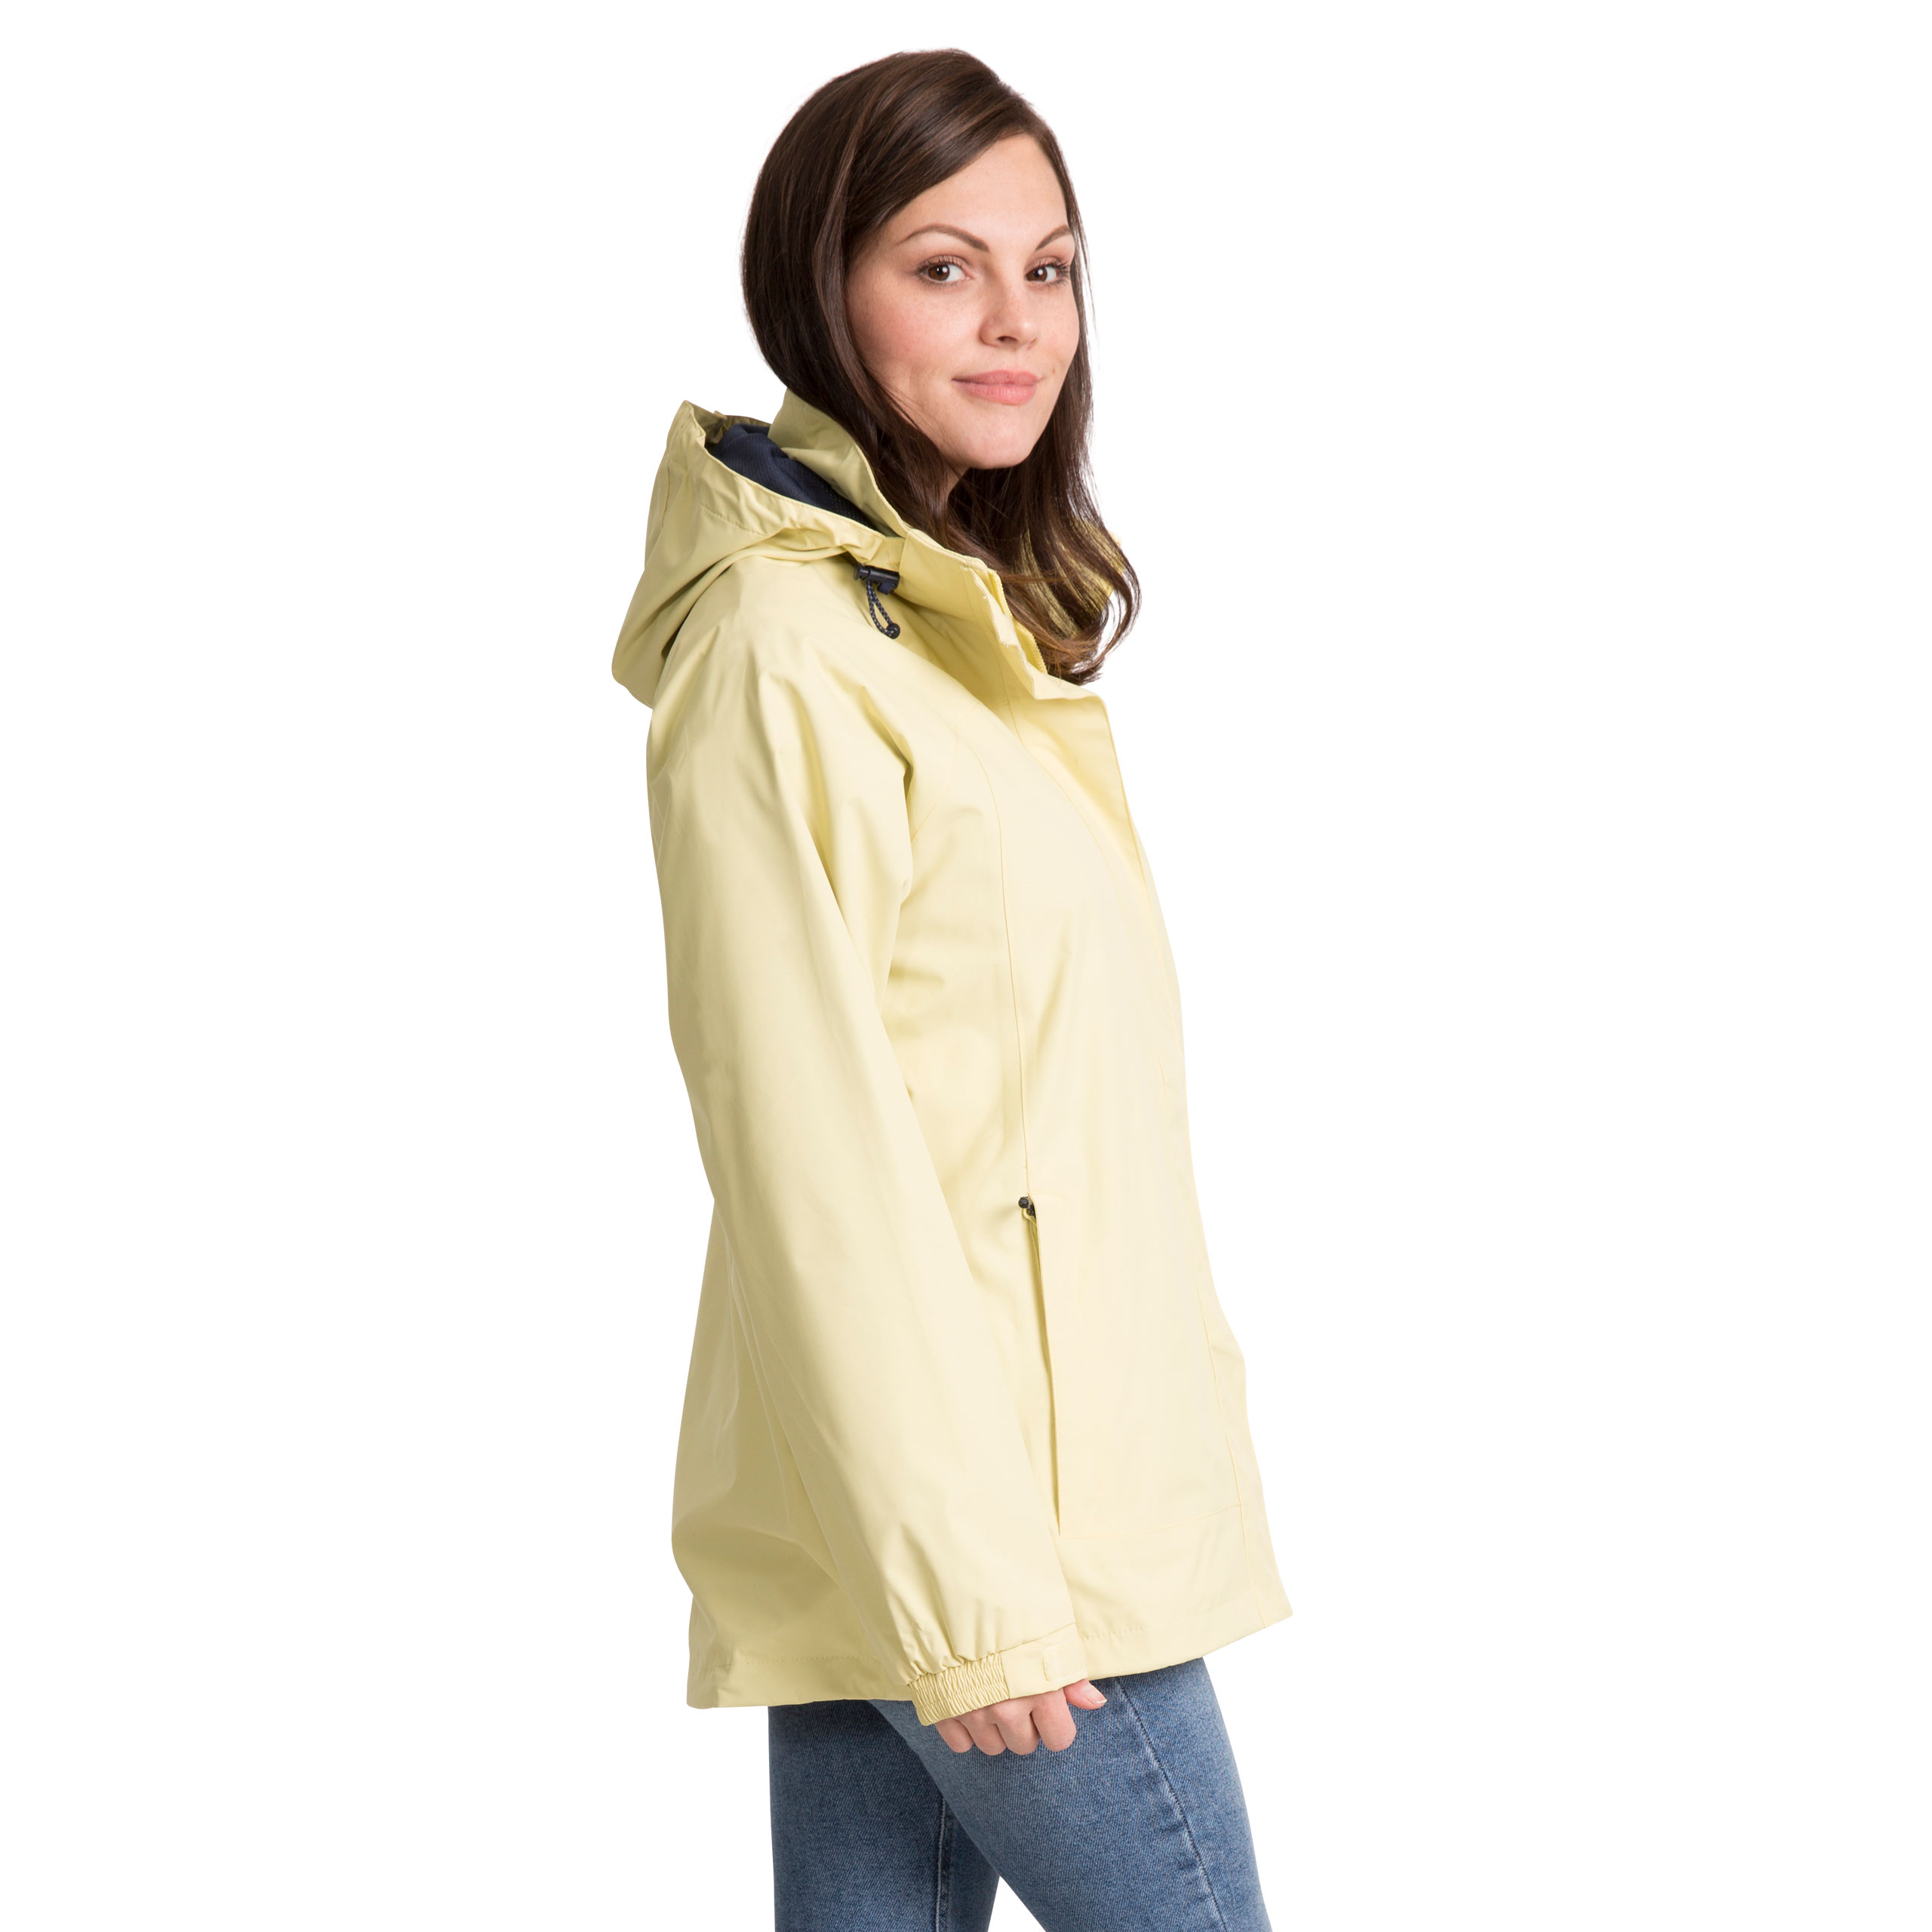 Trespass-Womens-Waterproof-Hooded-Jacket-Outdoor-Cycling-Raincoat thumbnail 24